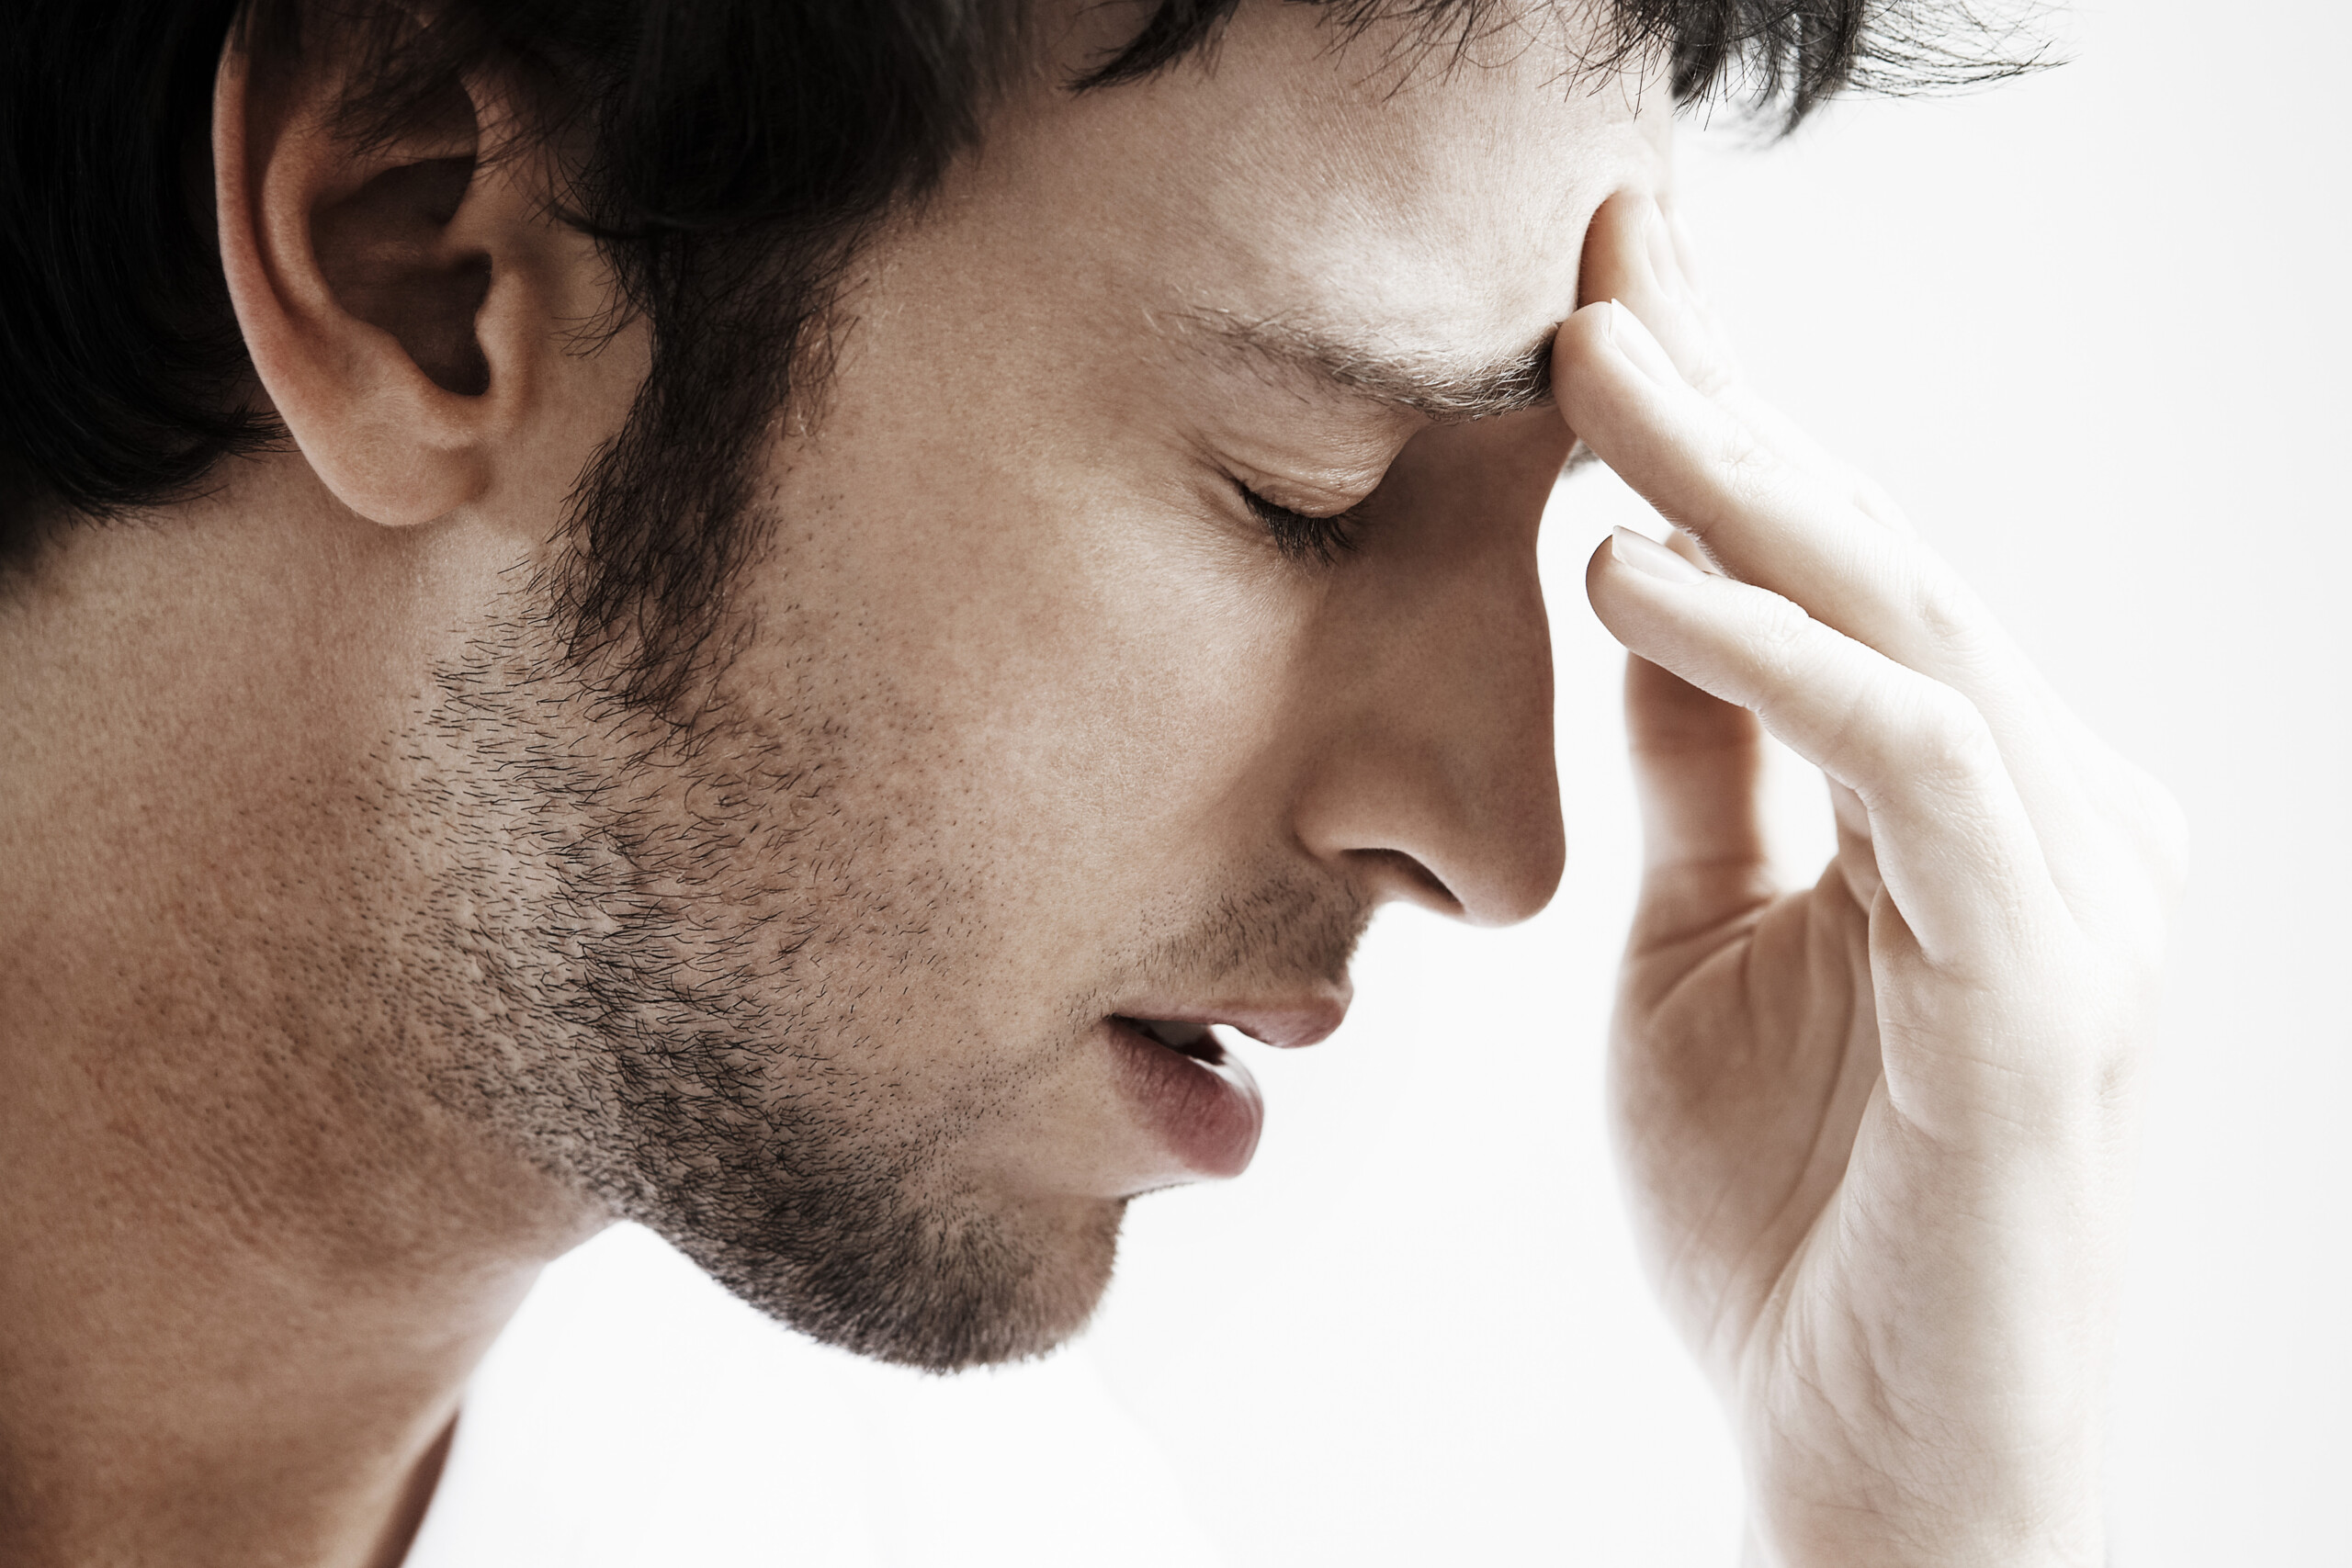 Can Sinus Headache Come from Trigeminal Nerve Irritation?